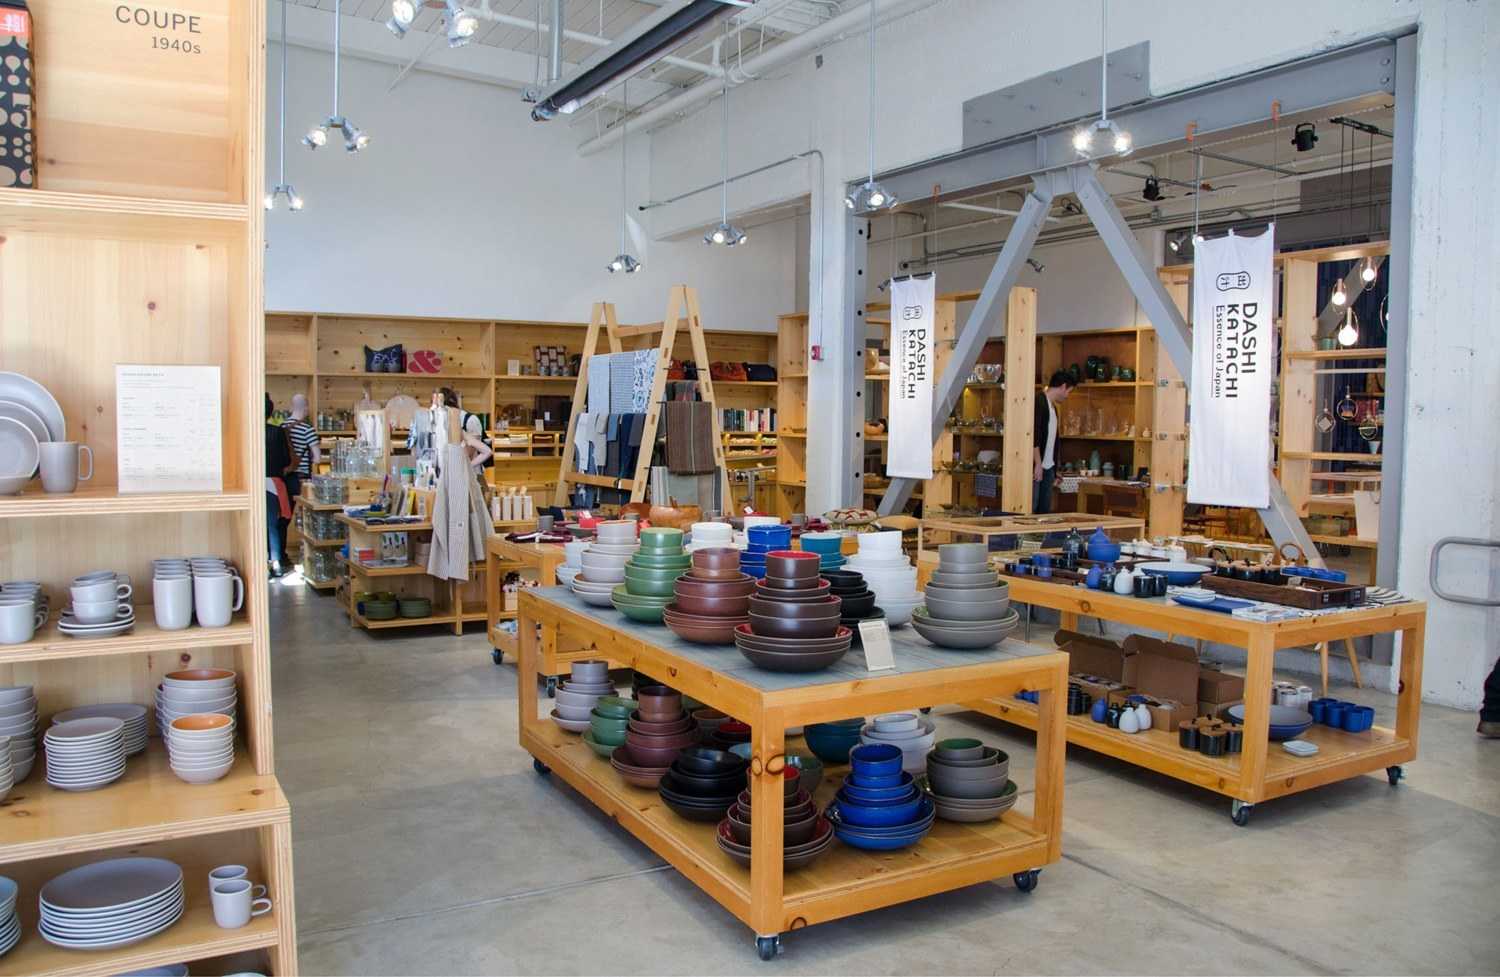 The showroom is full of an array ceramics (SMALL THINGS IN BIG NUMBERS AHHH), and always has some sort of exhibition going on— in this case, a Dashi Katachi pop-up shop.